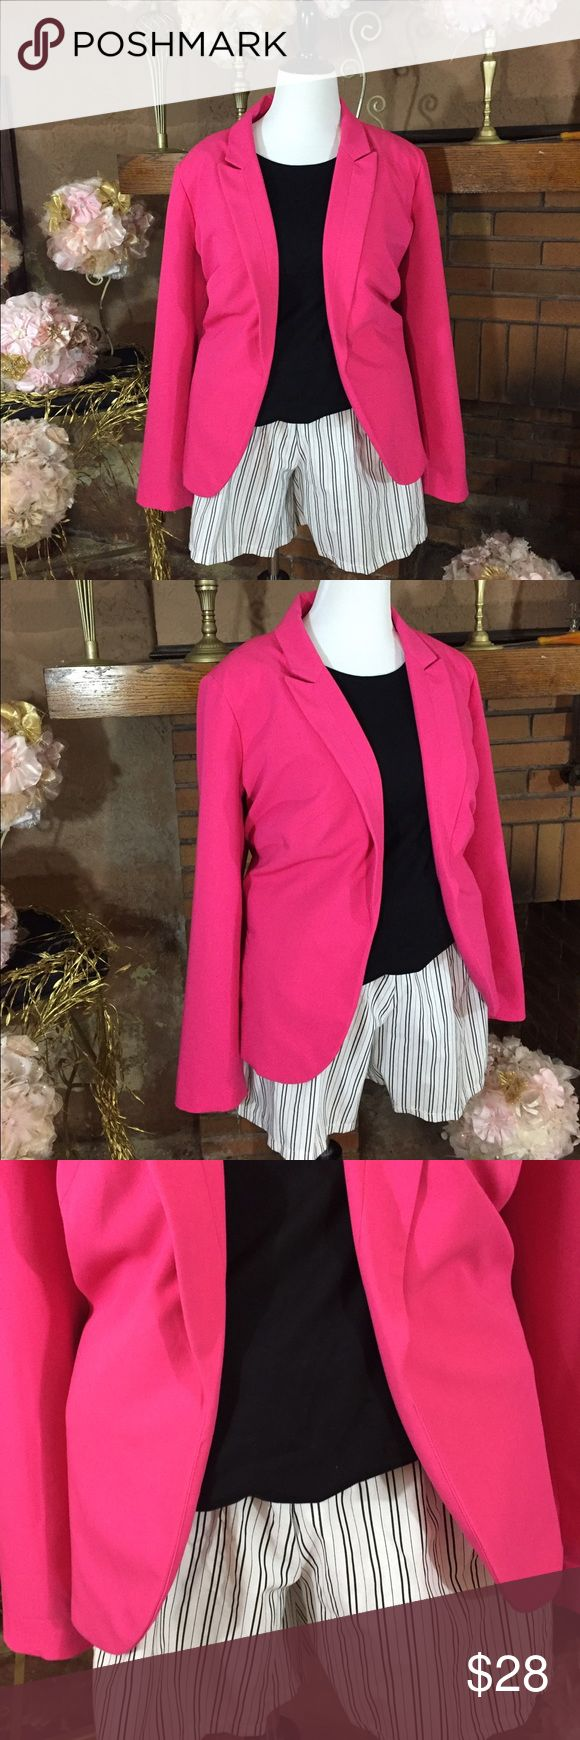 Worthington blazer sz 3X and shorts sz 24 Worthington pink blazer size 3X in like new condition. Croft and Barrow short sleeve crew neck black t-shirt size 3X new with tags. Separate Issue Woman black and white shorts sz 24 with elastic waist. 6.5in inseam. Like new condition. Please check out all pictures for best description of the items. Ask me any questions and happy shopping! Worthington Jackets & Coats Blazers